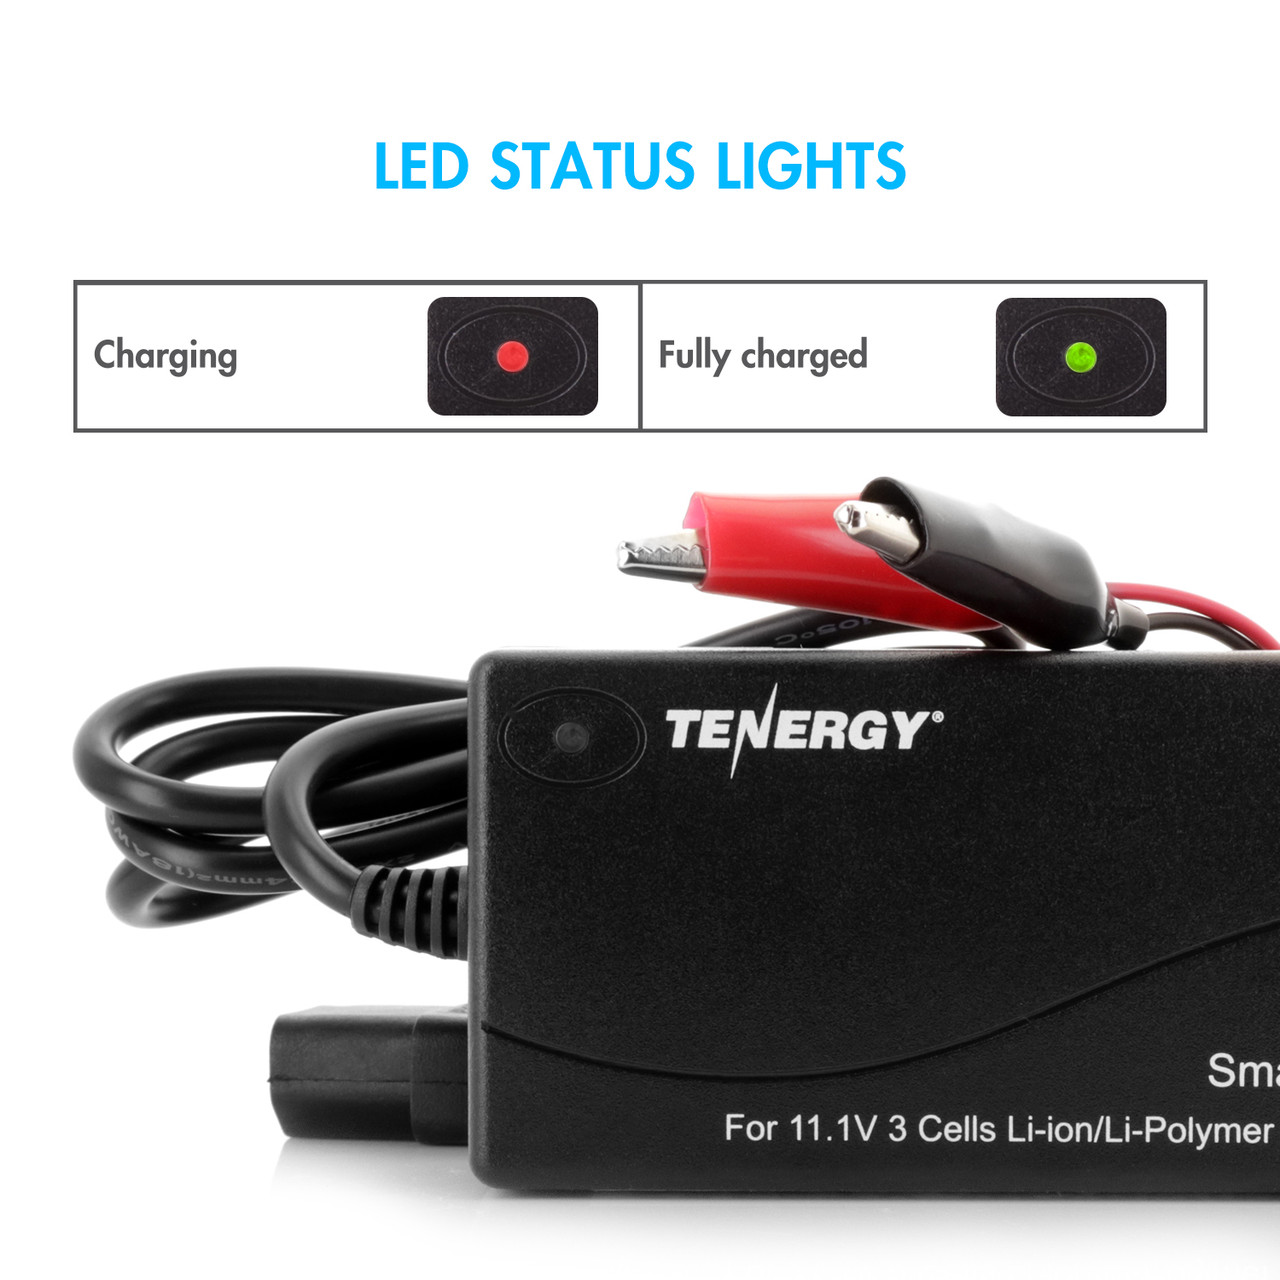 Tenergy 11.1V (3S) Li-ion/LiPo Battery Pack Smart Charger (Output: 12.6V, 2A)